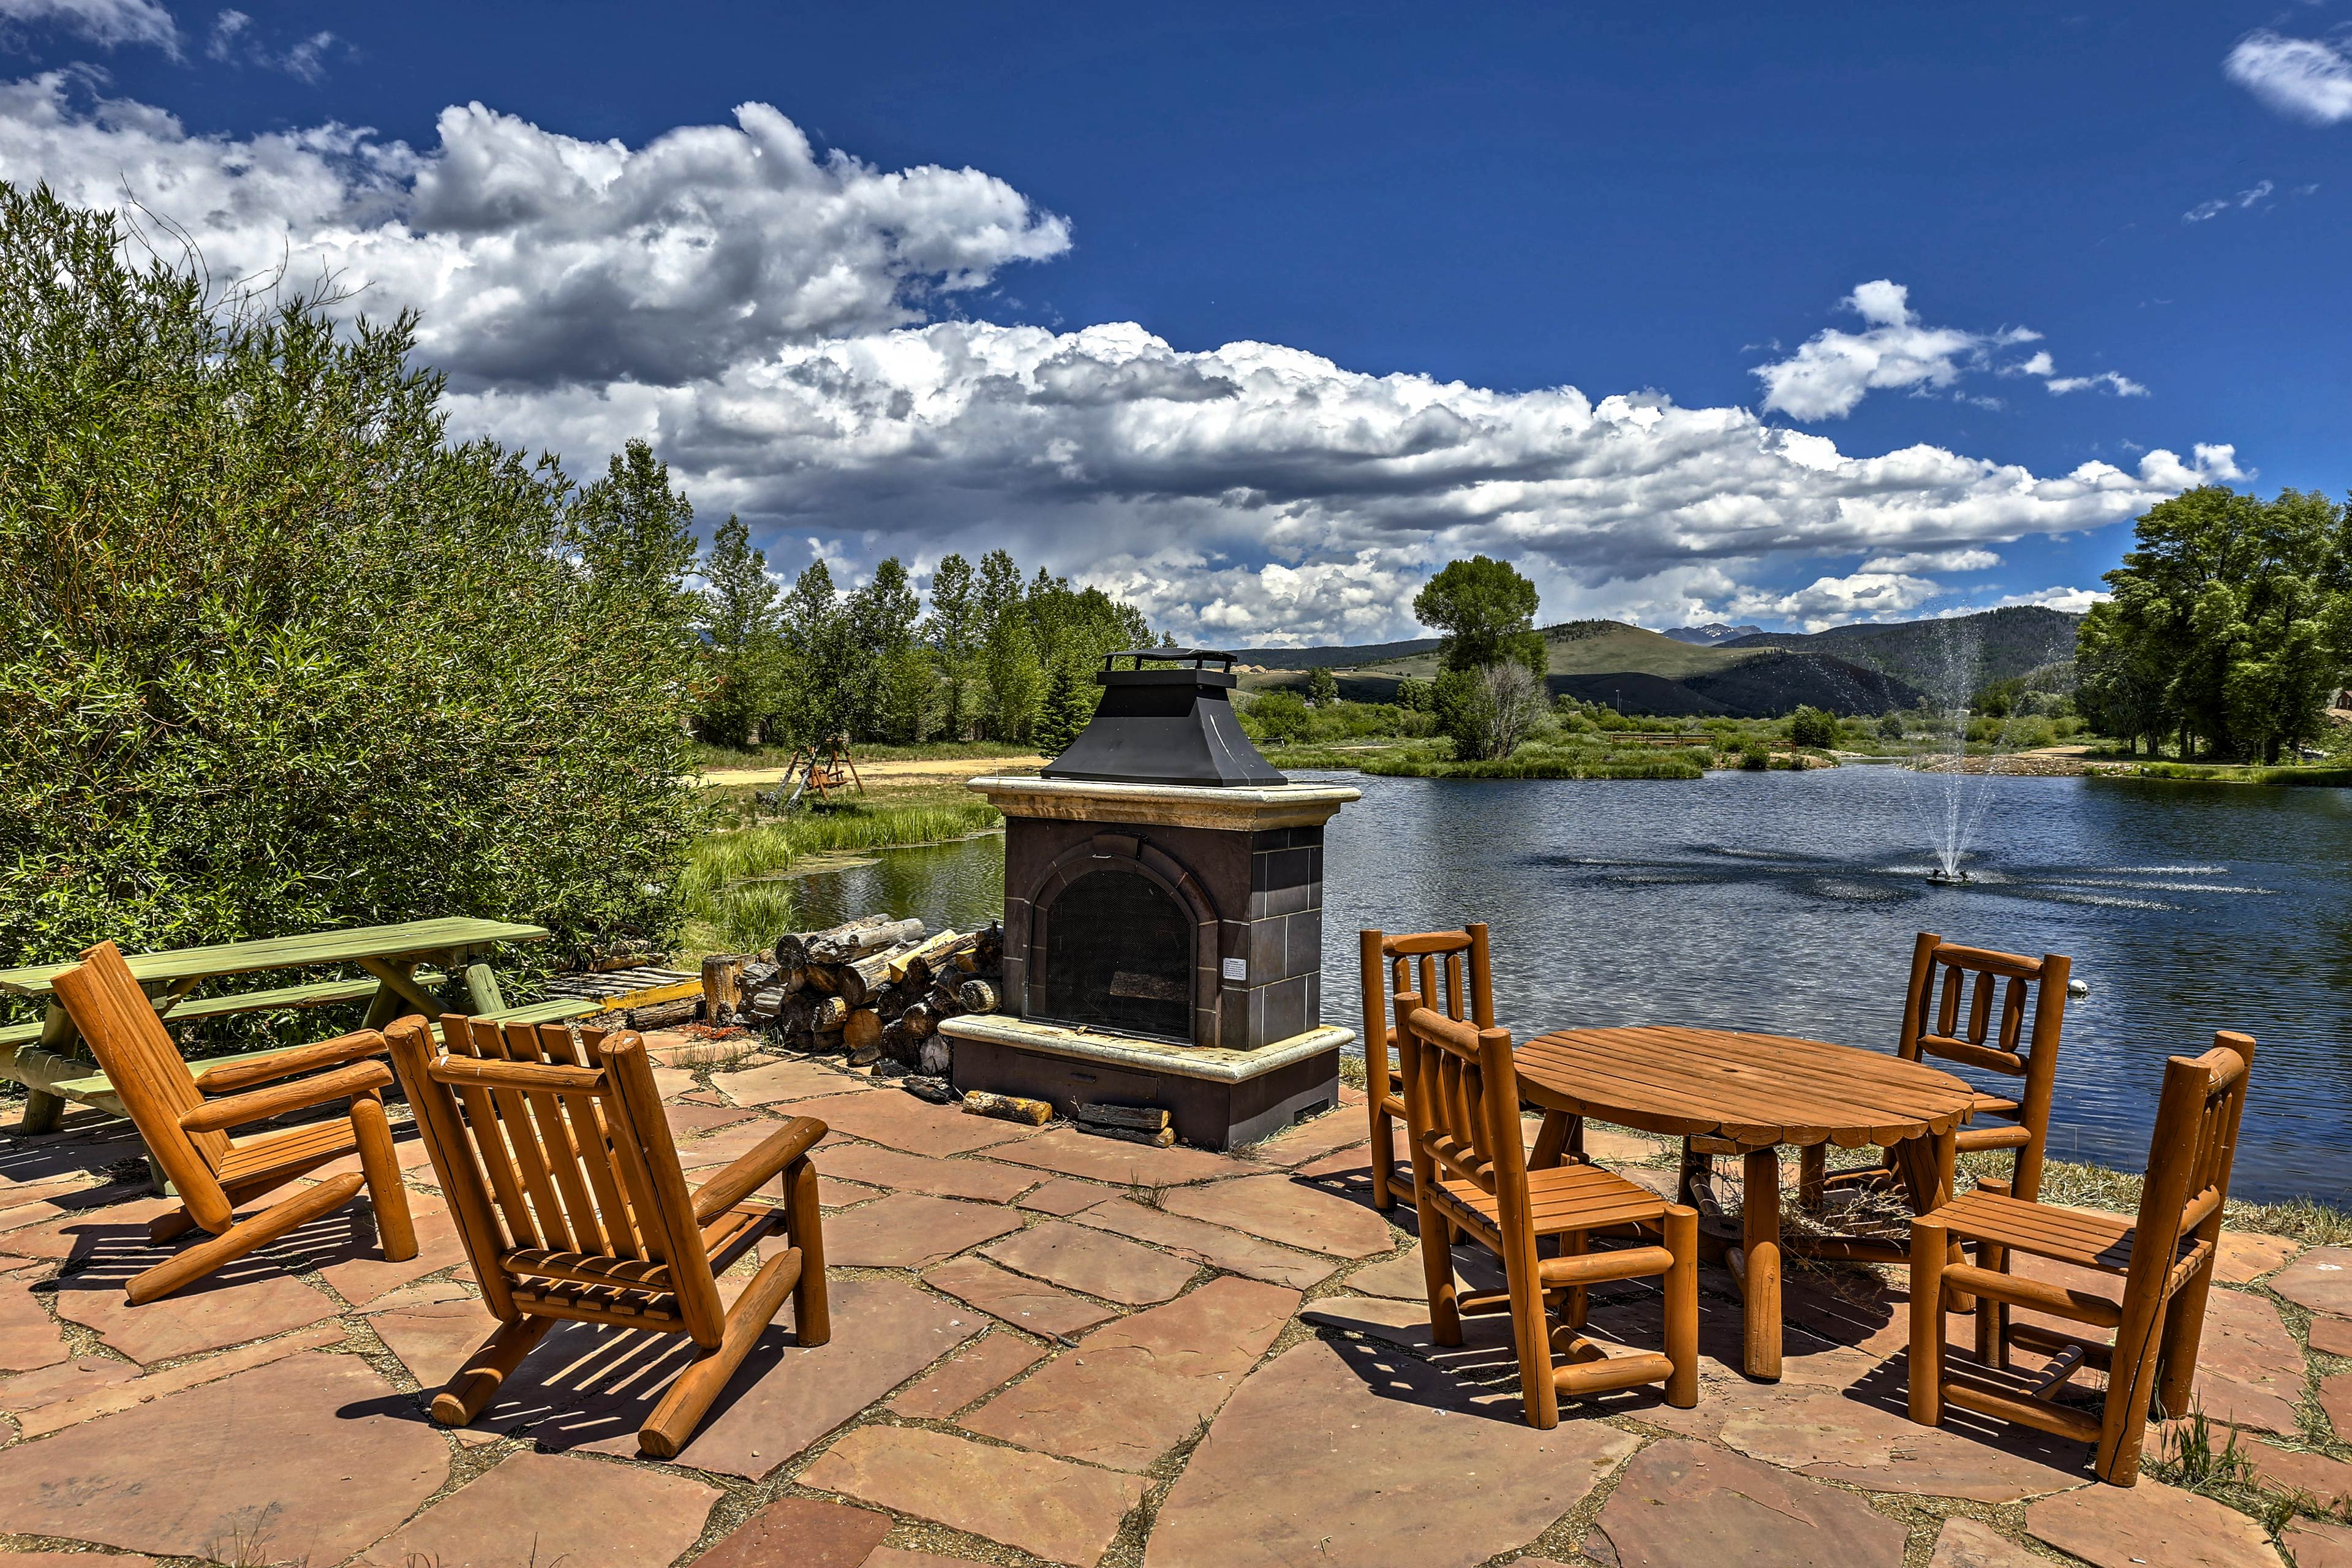 Light up the outdoor fireplace beside the pond and sip your favorite drink.